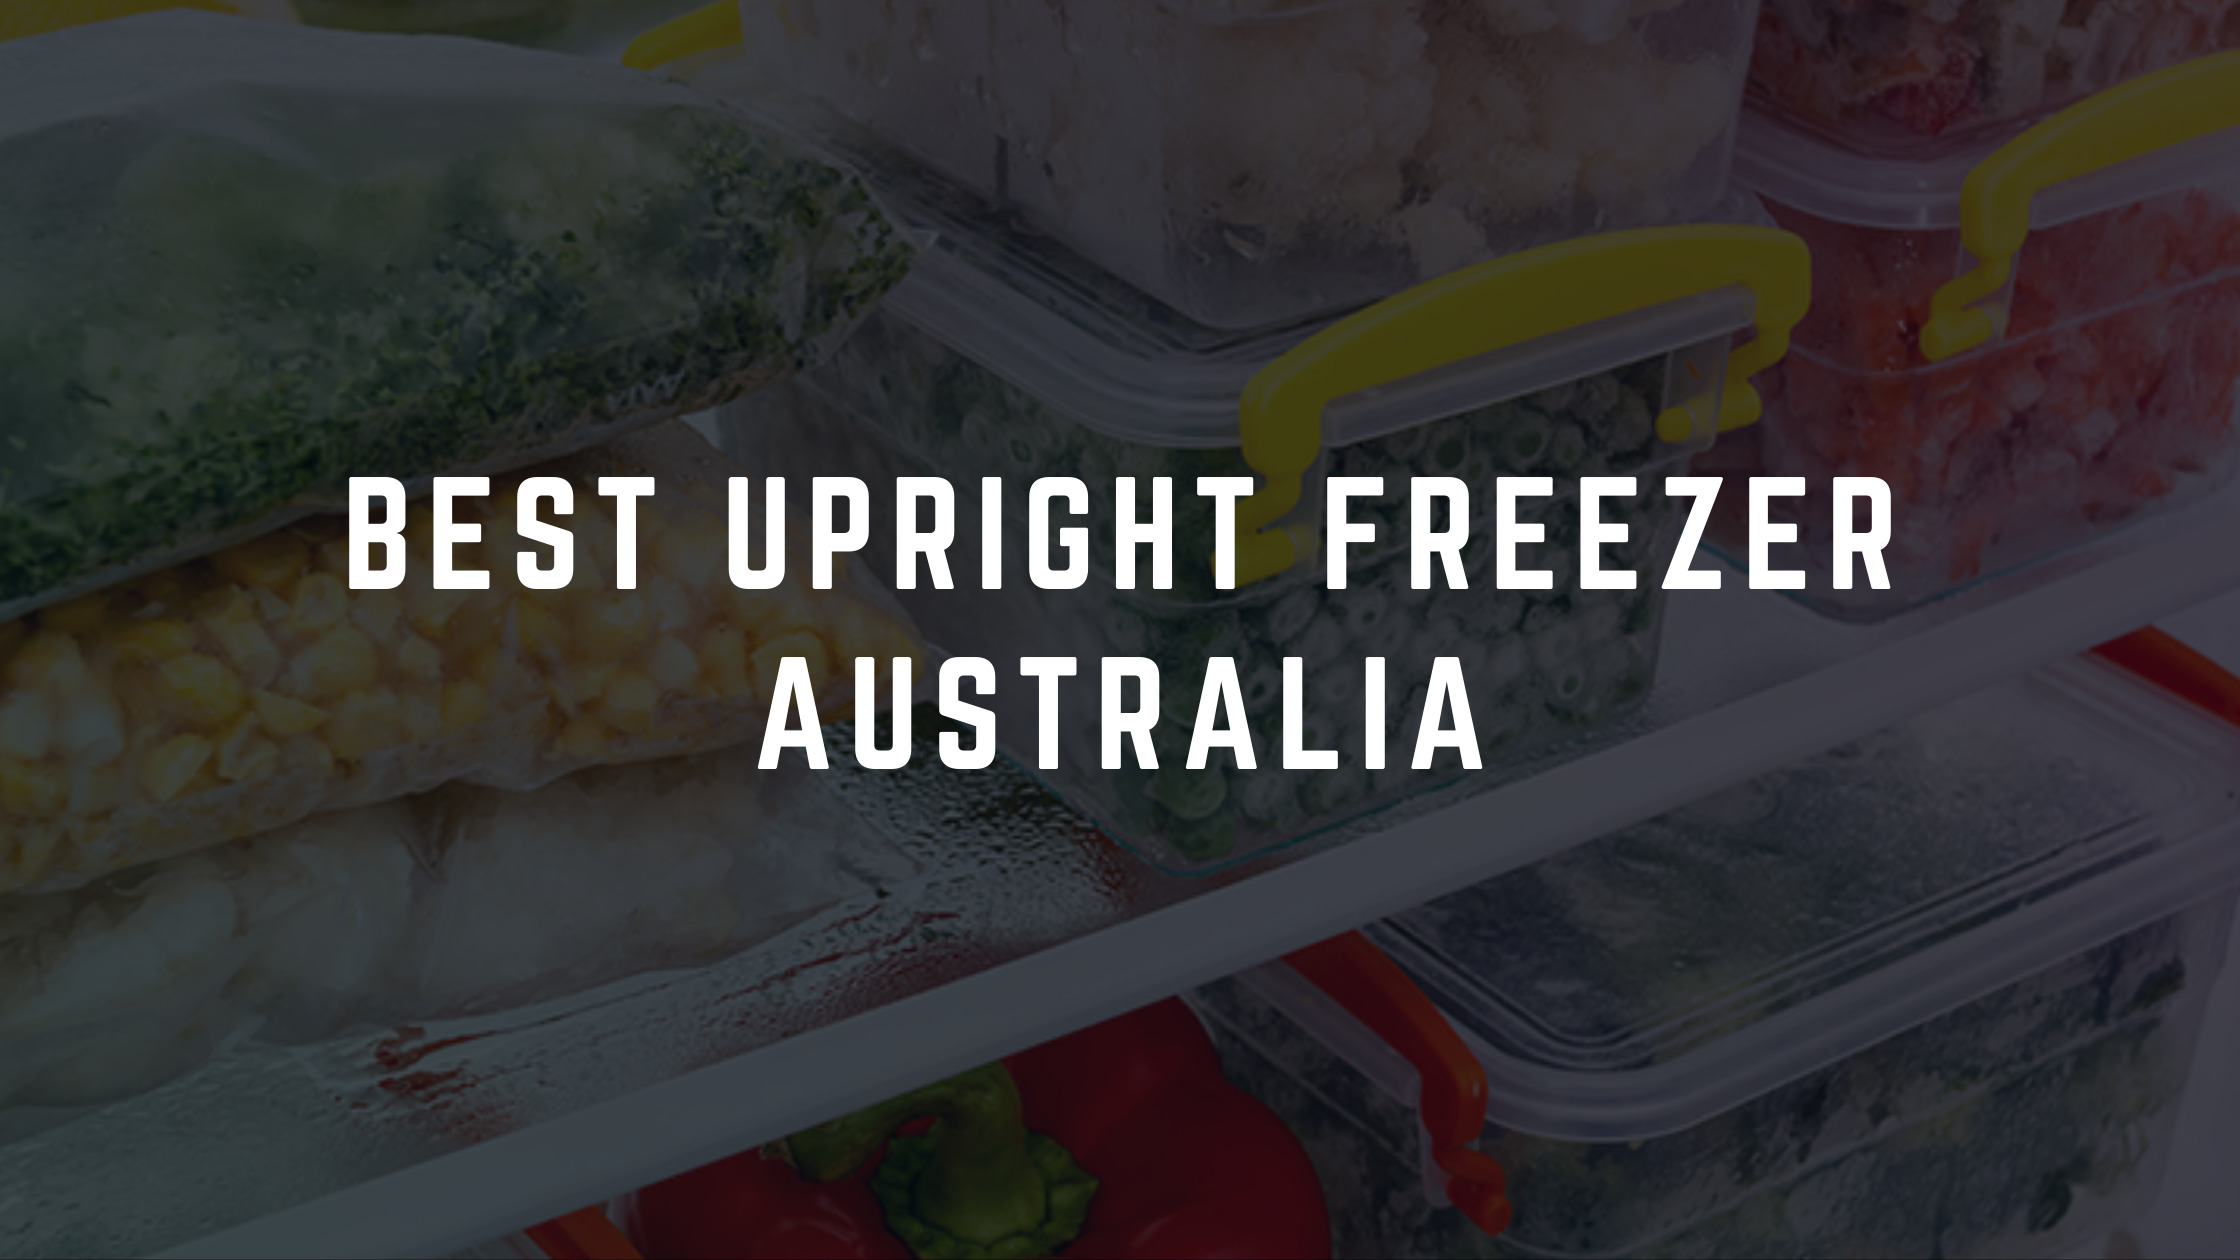 upright freezer reviews australia